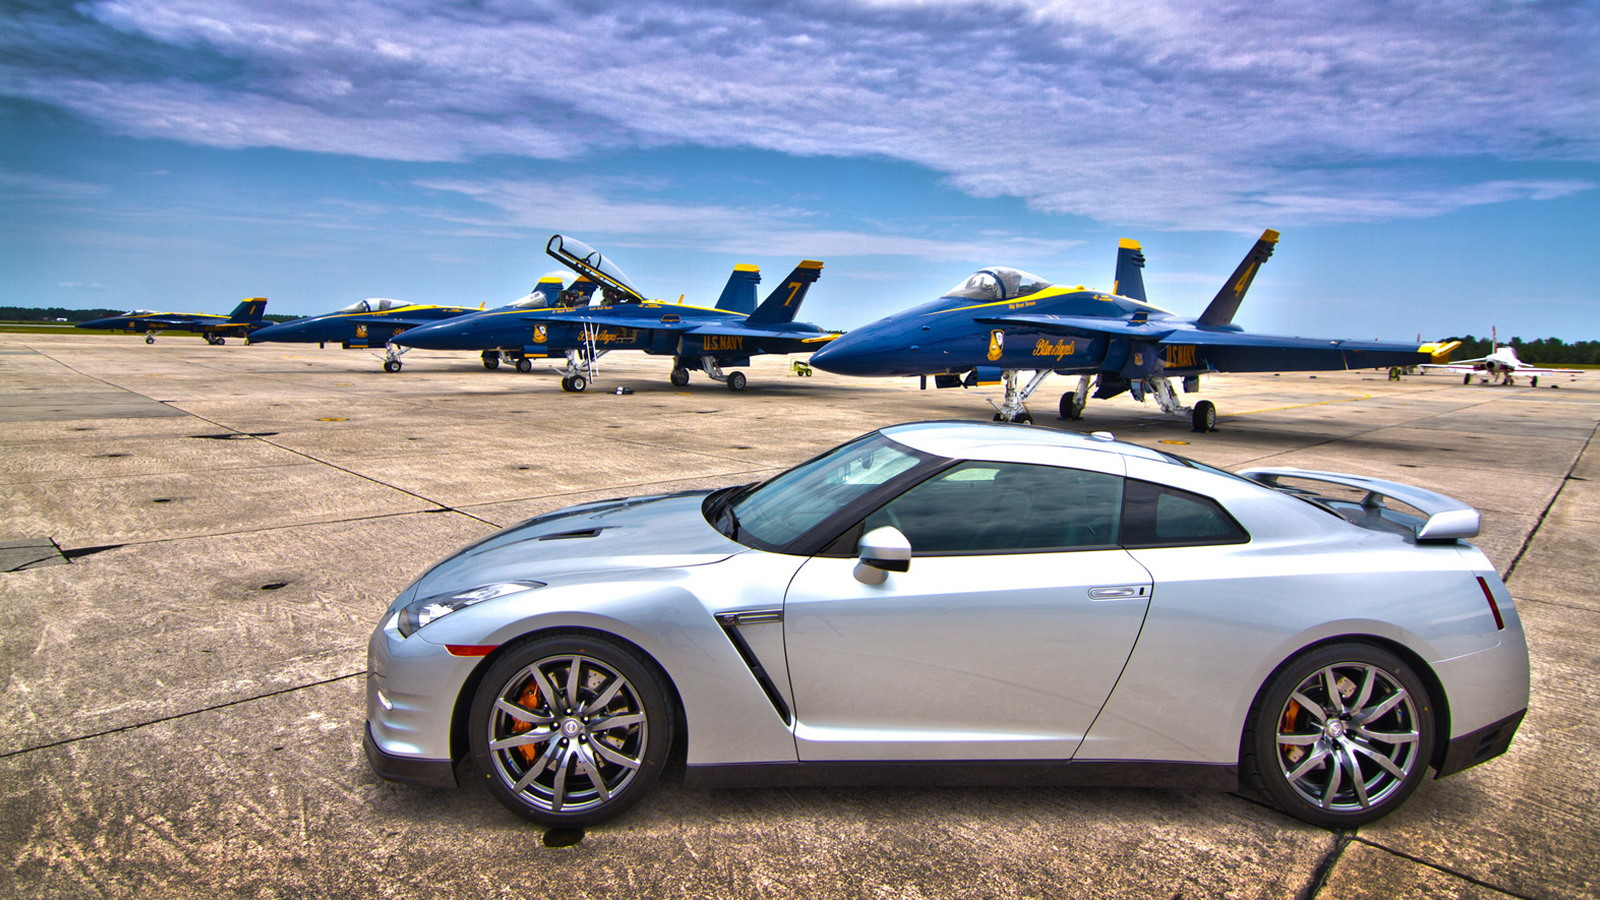 2013 Nissan GT-R and the Blue Angels